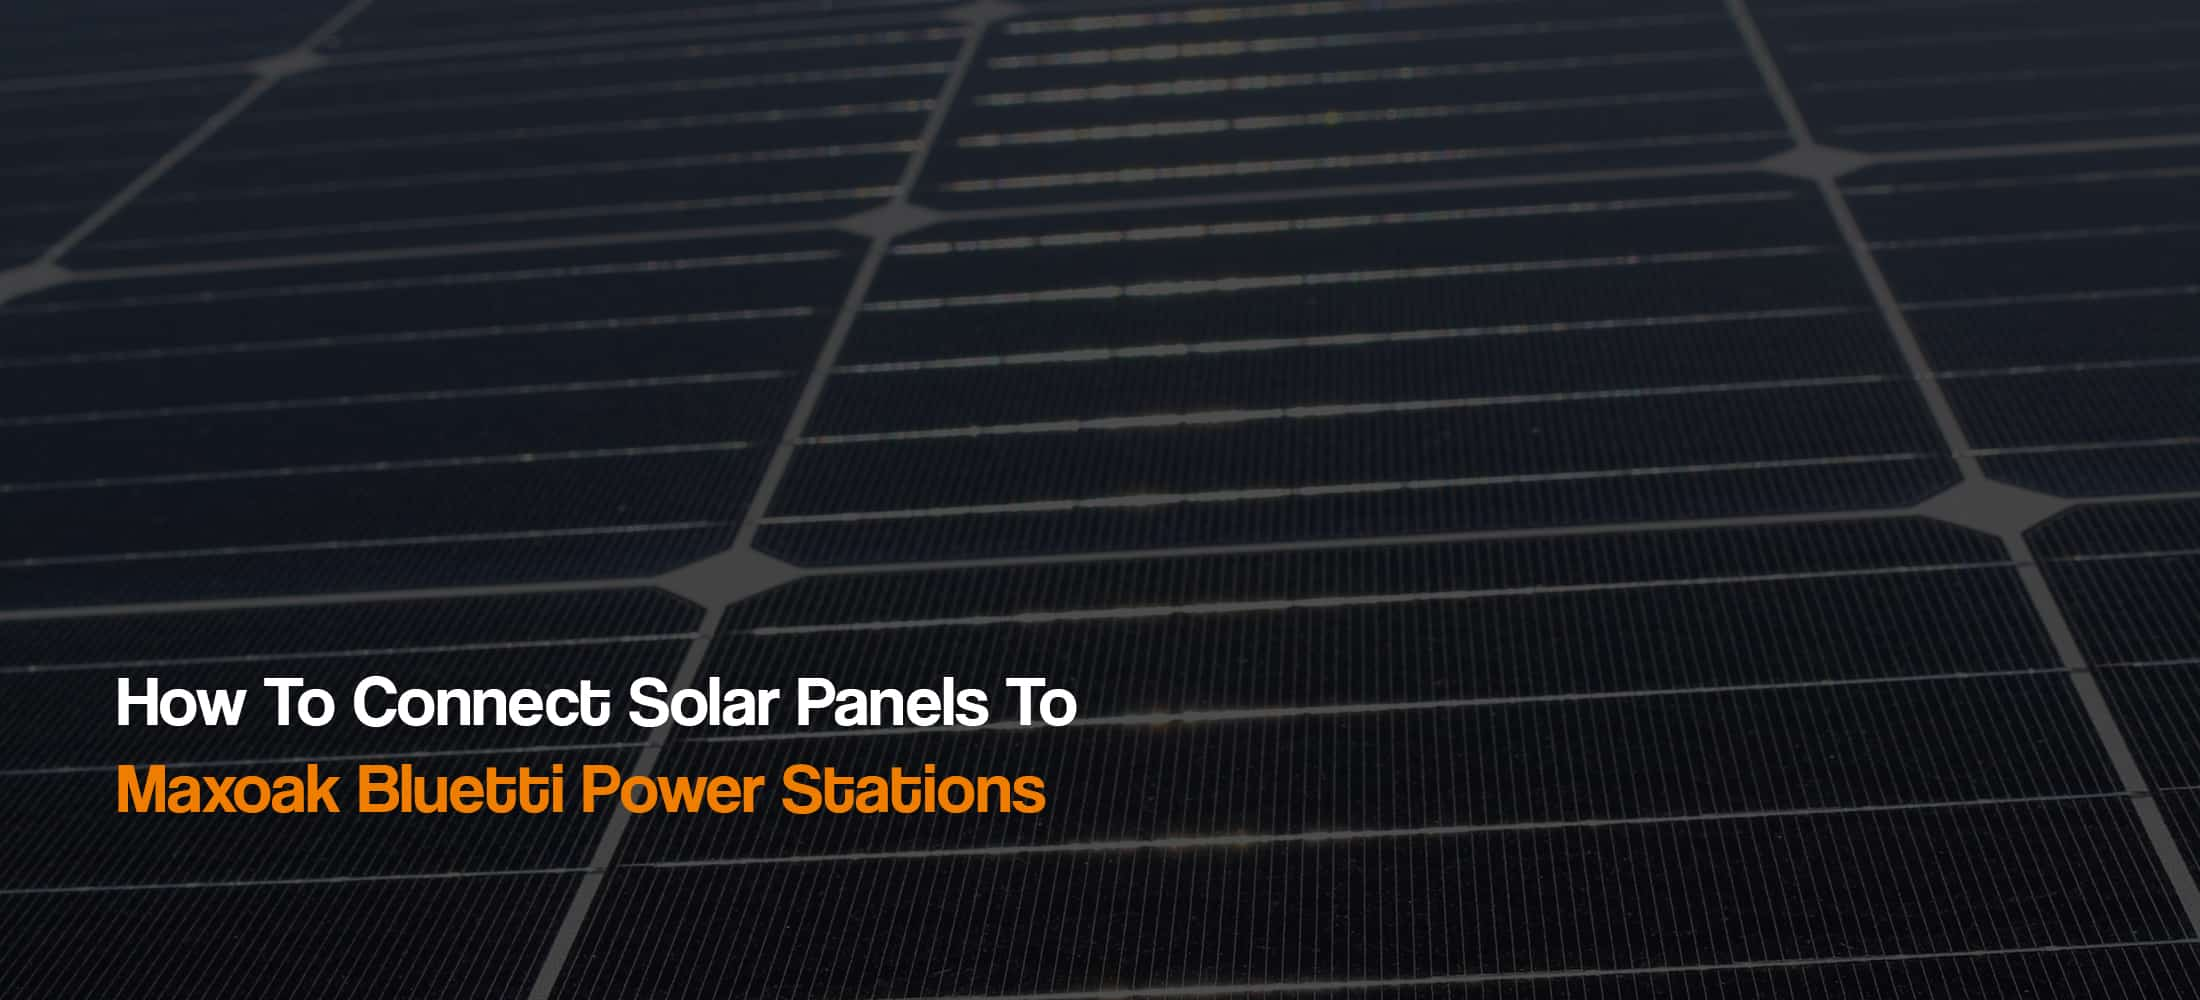 how-to-connect-compatible-solar-panels-to-maxoak-bluetti-power-stations-solar-generators-renogy-the-solar-addict